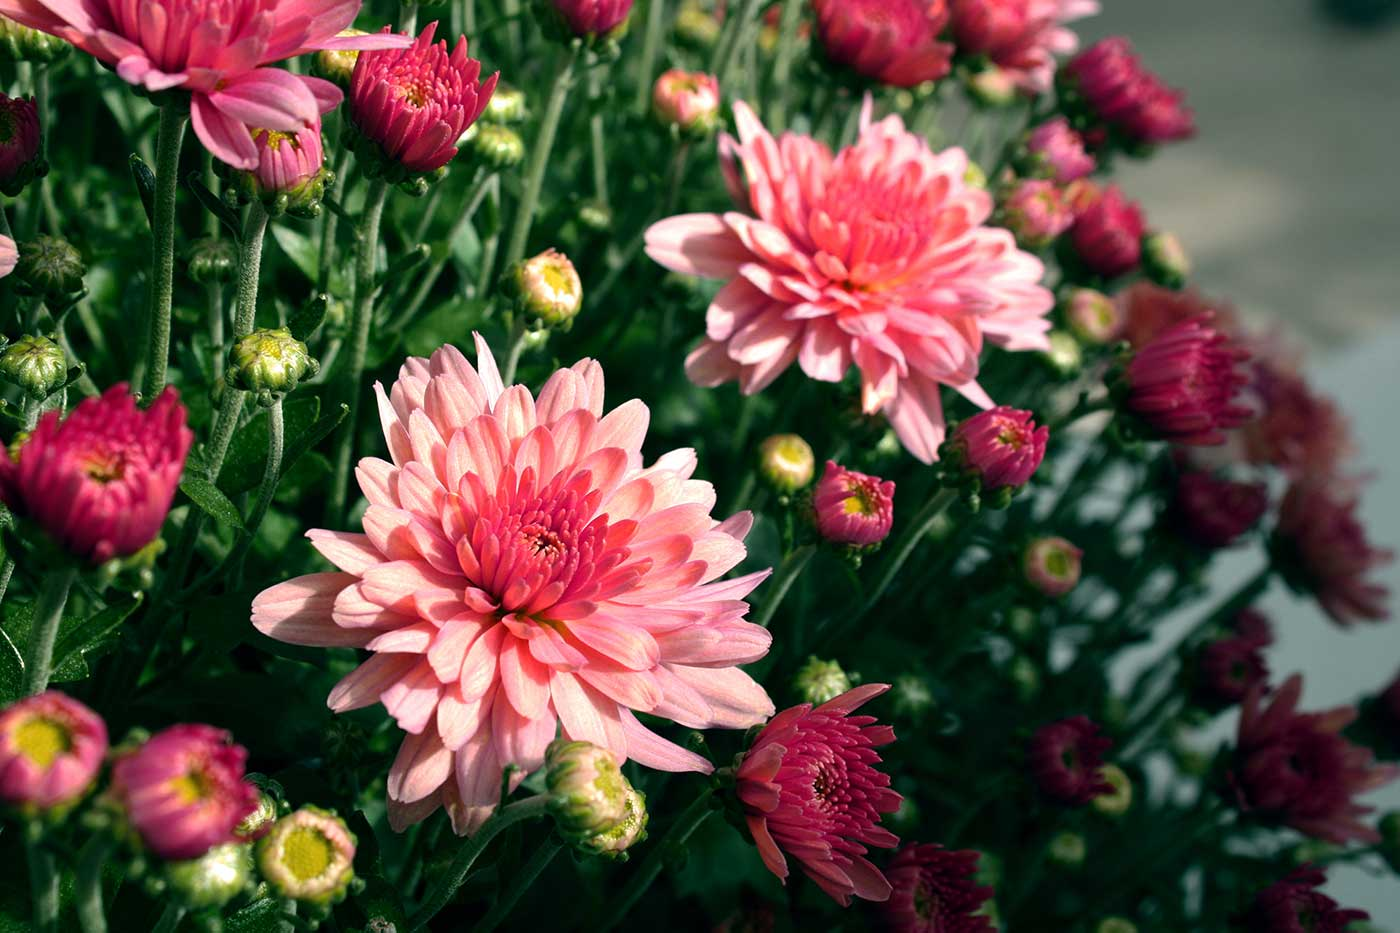 Chrysanthemum Close Up